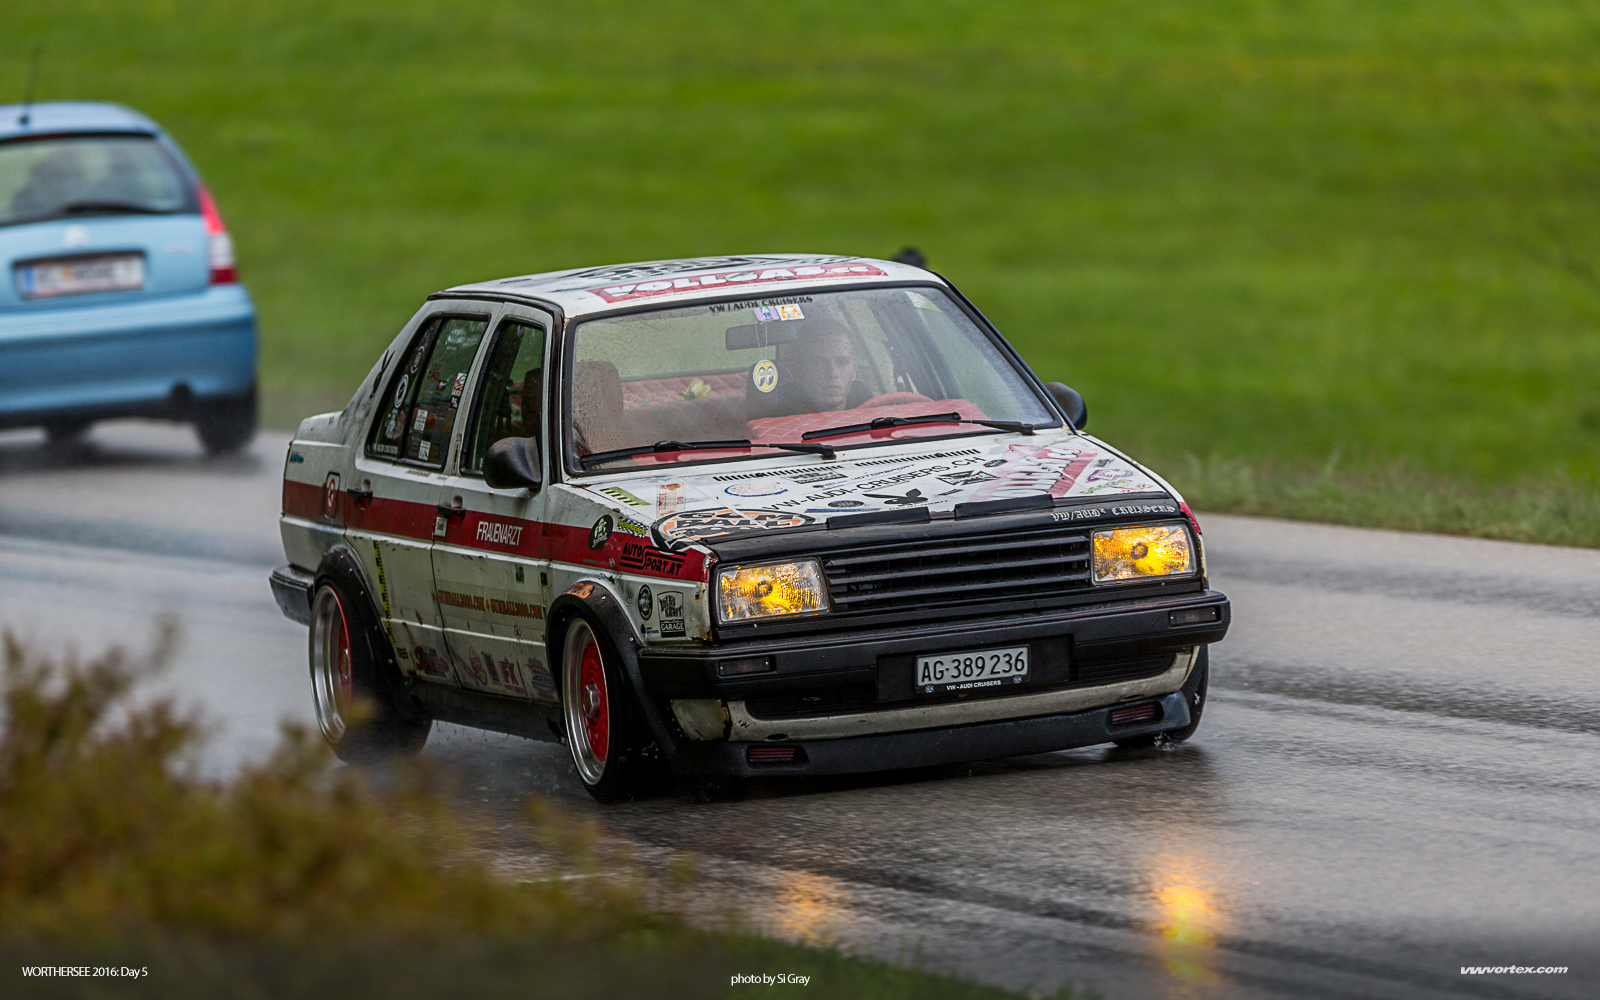 SiGray.Worthersee2016-8686